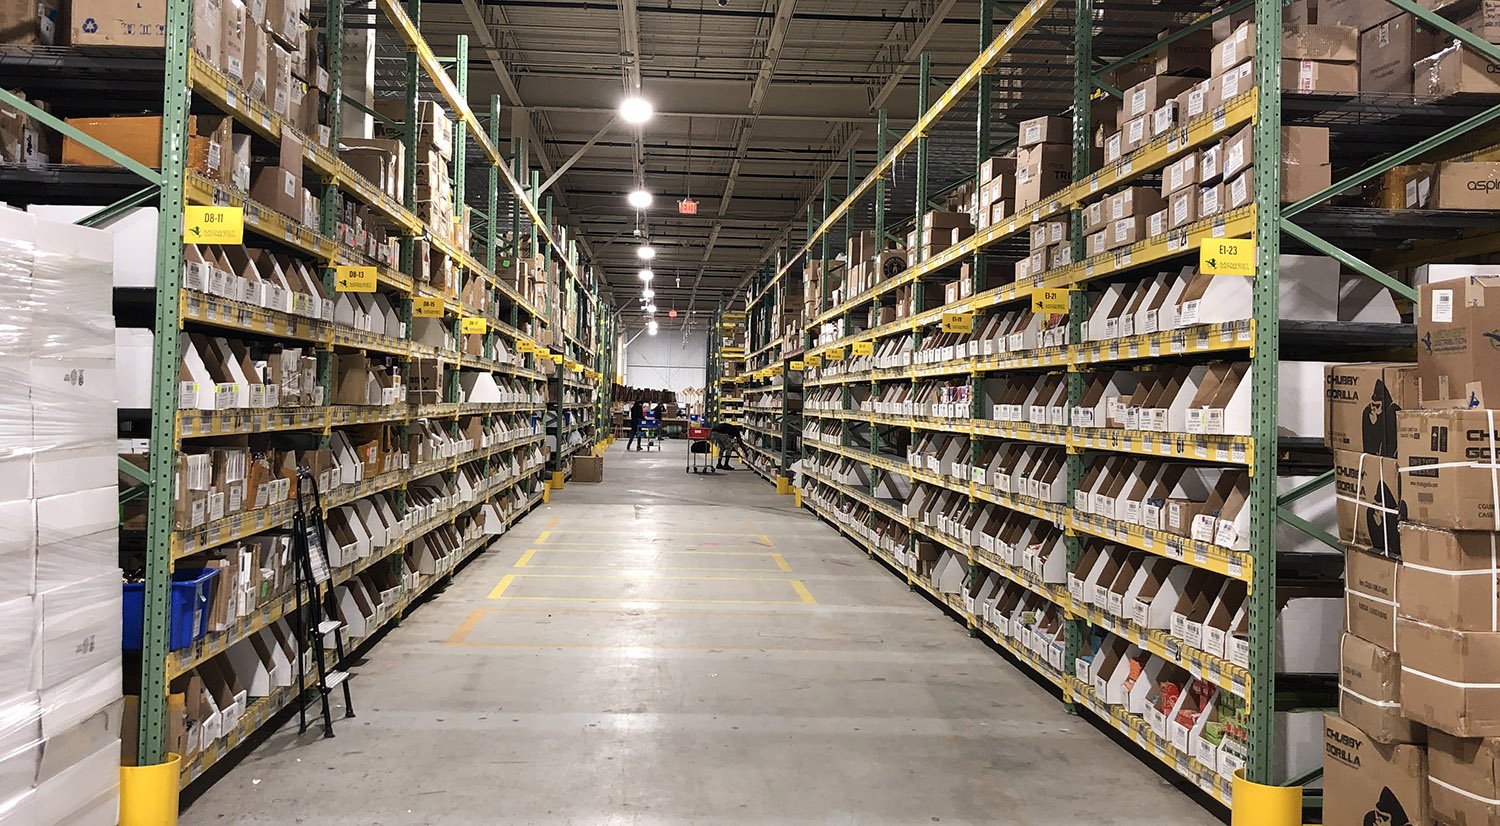 April 2019 Digital Issue: A Midwest Warehouse Tour